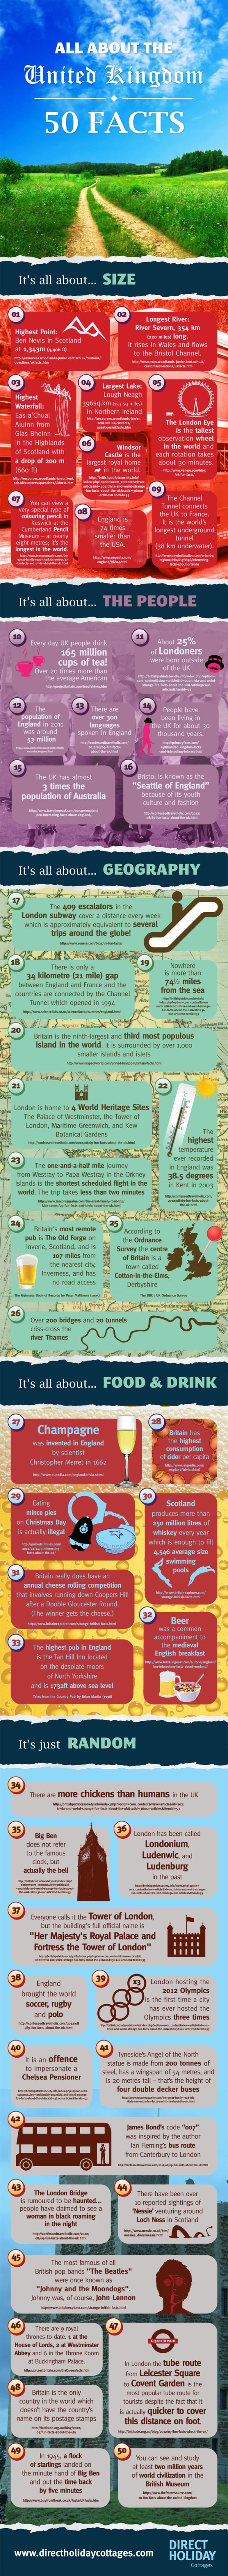 All About The United Kingdom - 50 Facts